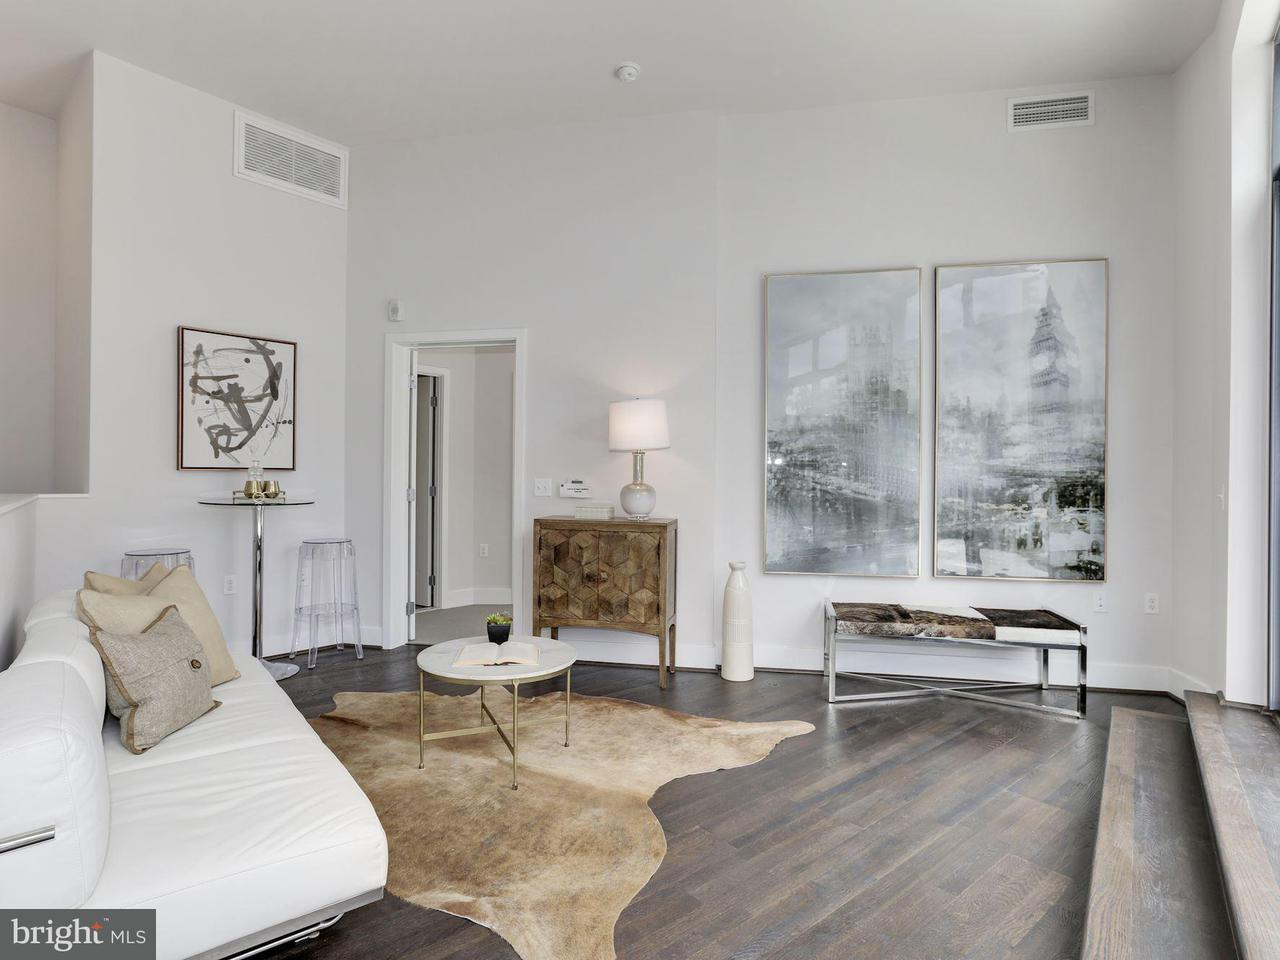 Additional photo for property listing at 525 Water St Sw #420 525 Water St Sw #420 Washington, コロンビア特別区 20024 アメリカ合衆国